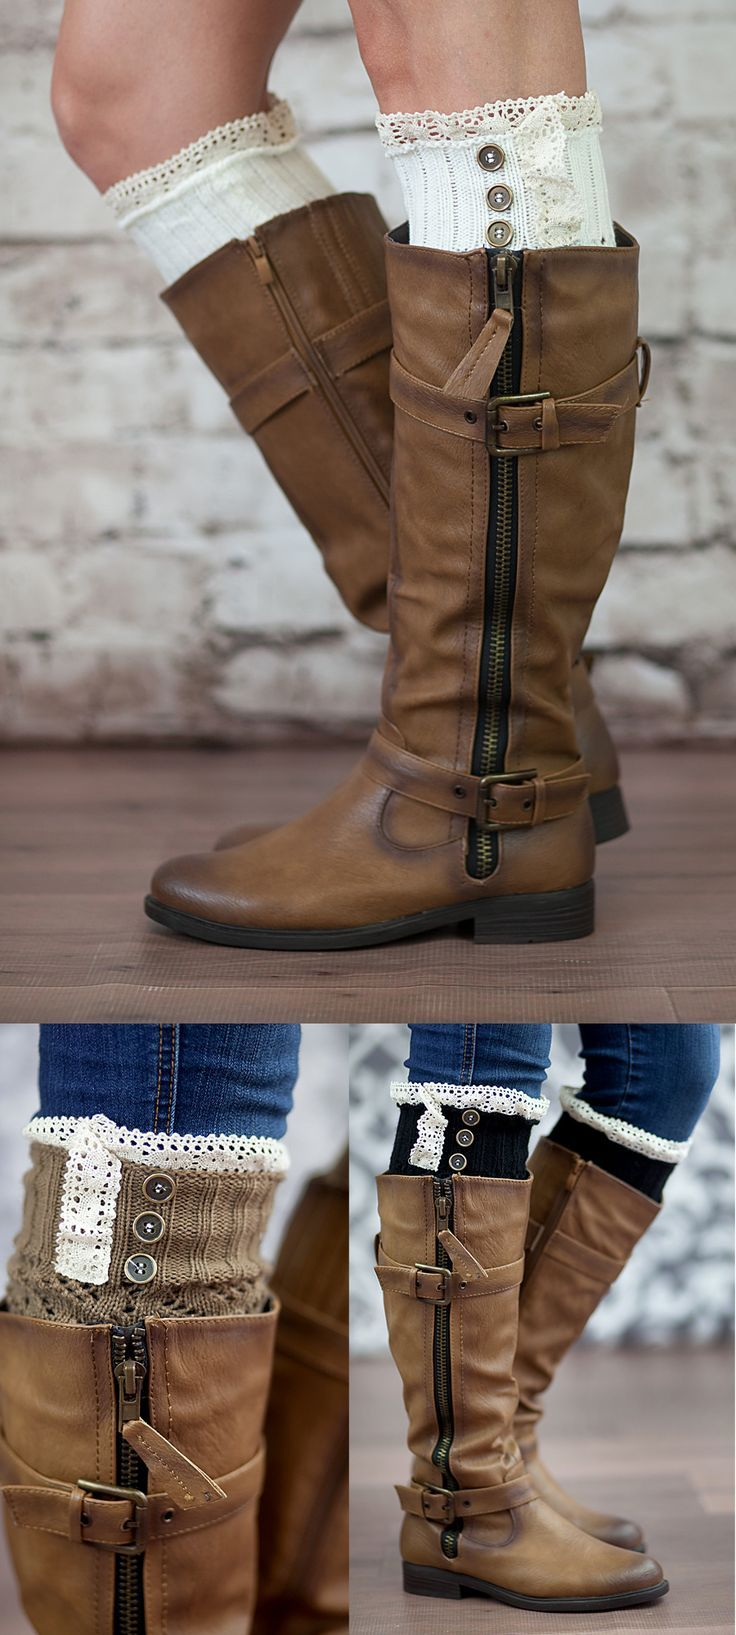 Bathroom scales boots - Boot Cuffs With Vintage Buttons Chic Look Without